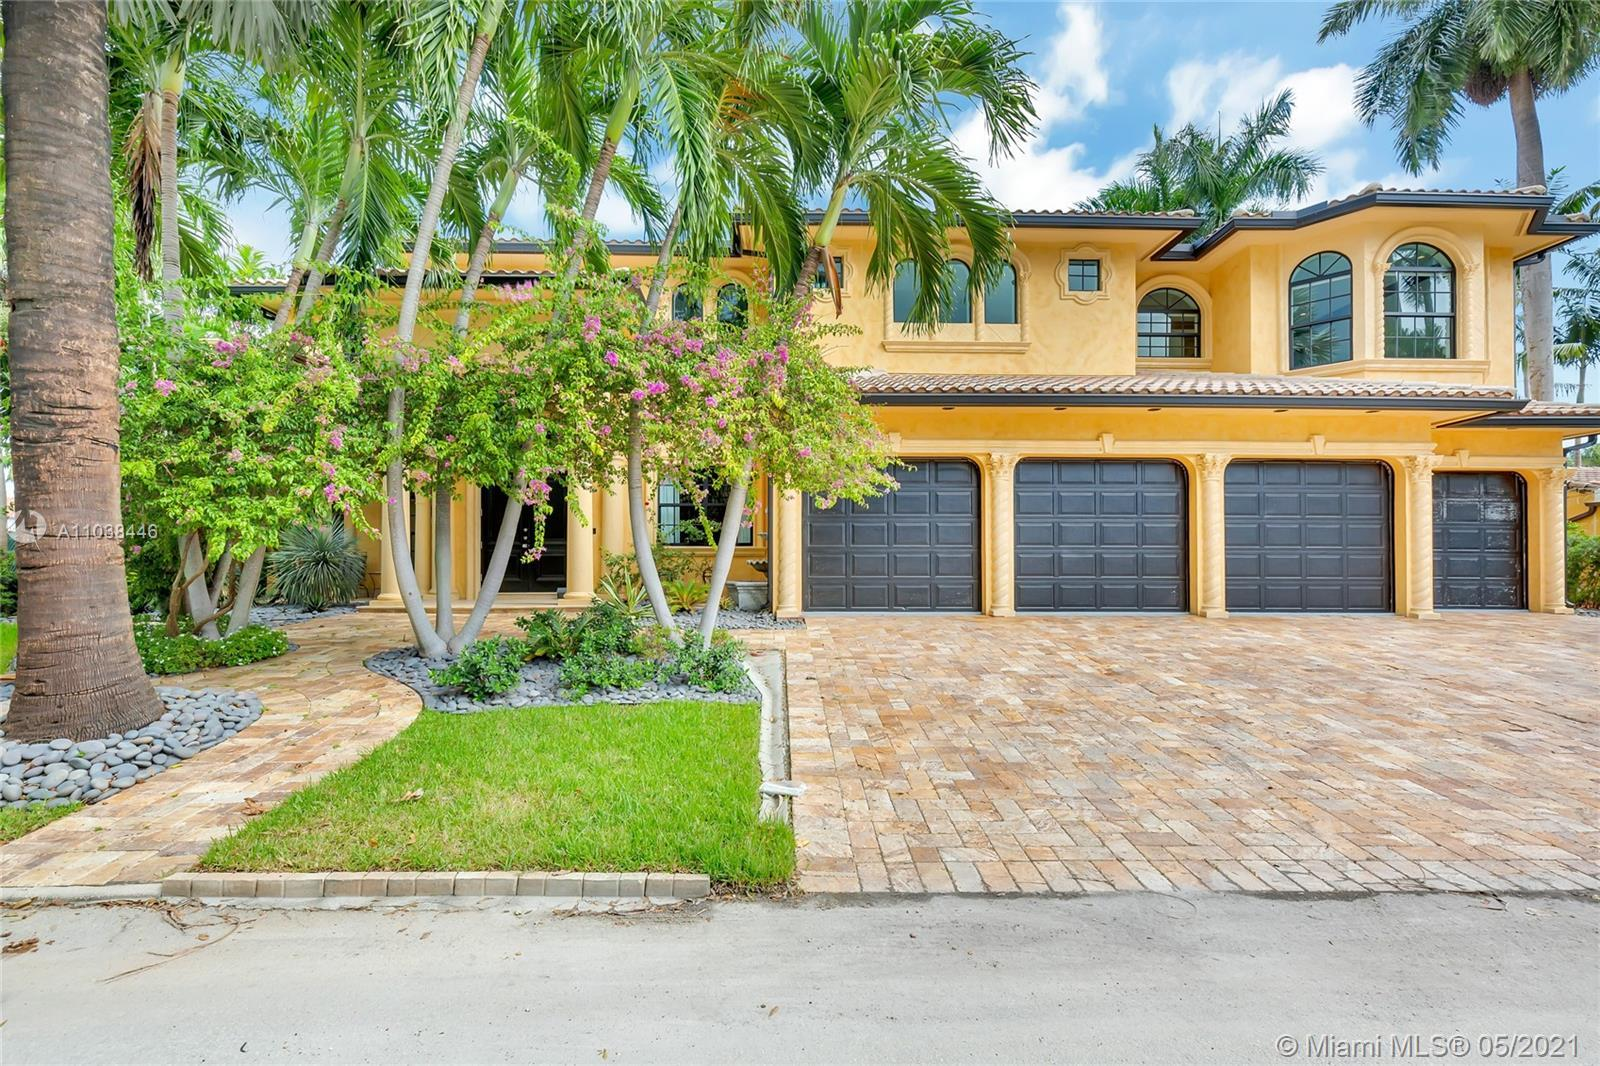 Stunning sophisticated home located in Las Olas Isles within walking distance to famous Fort Lauderd